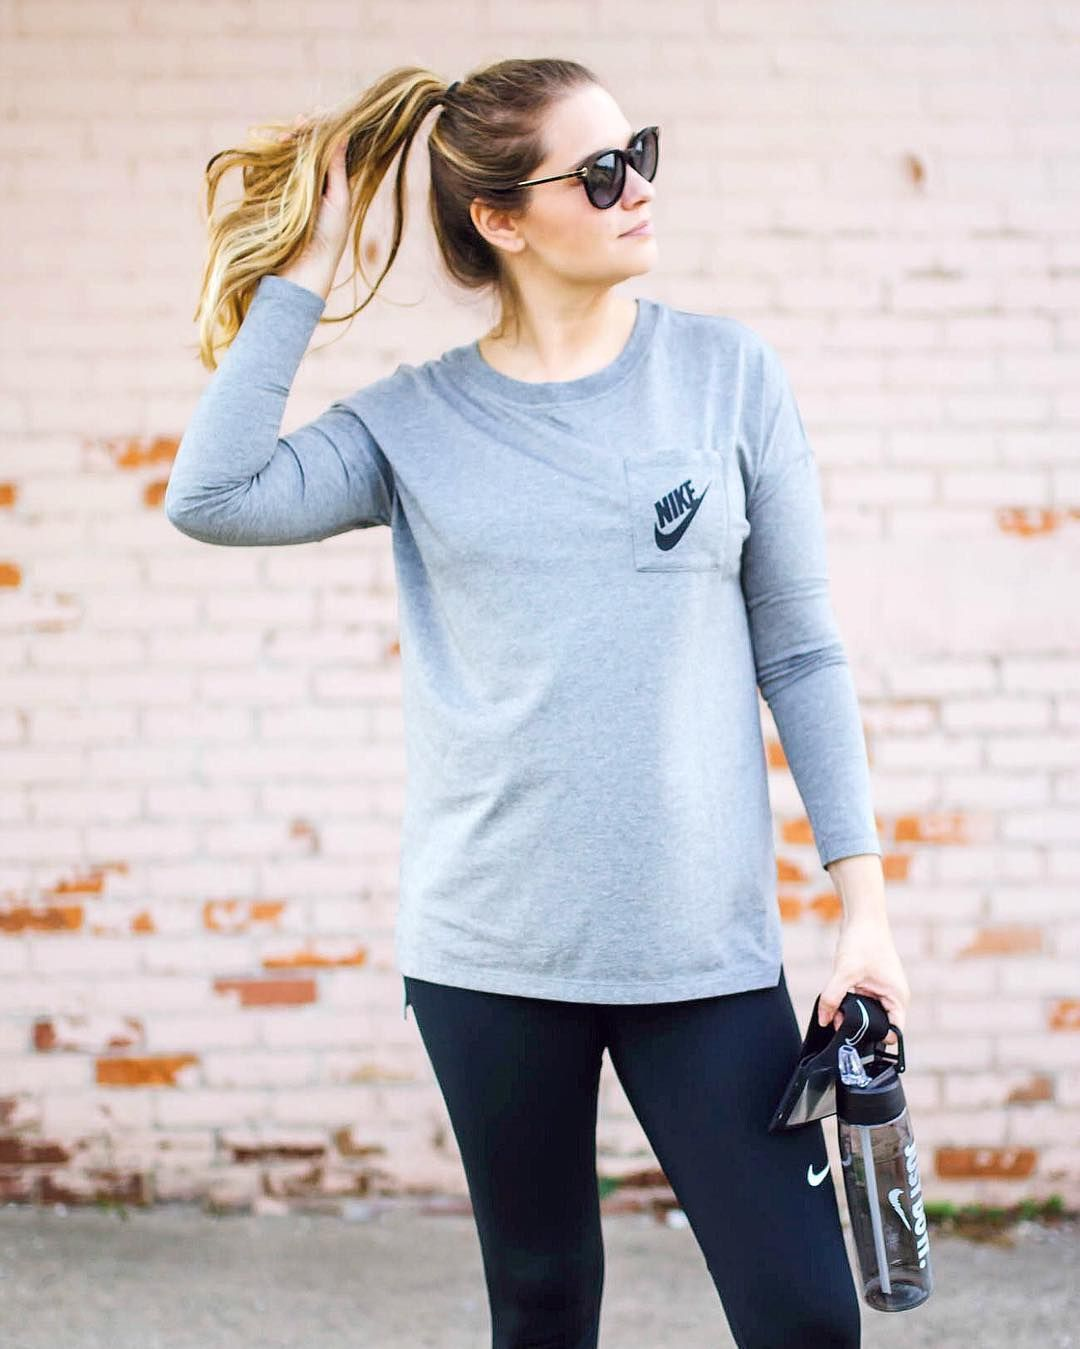 Sneak peak to Monday's post with sportchek chatting about